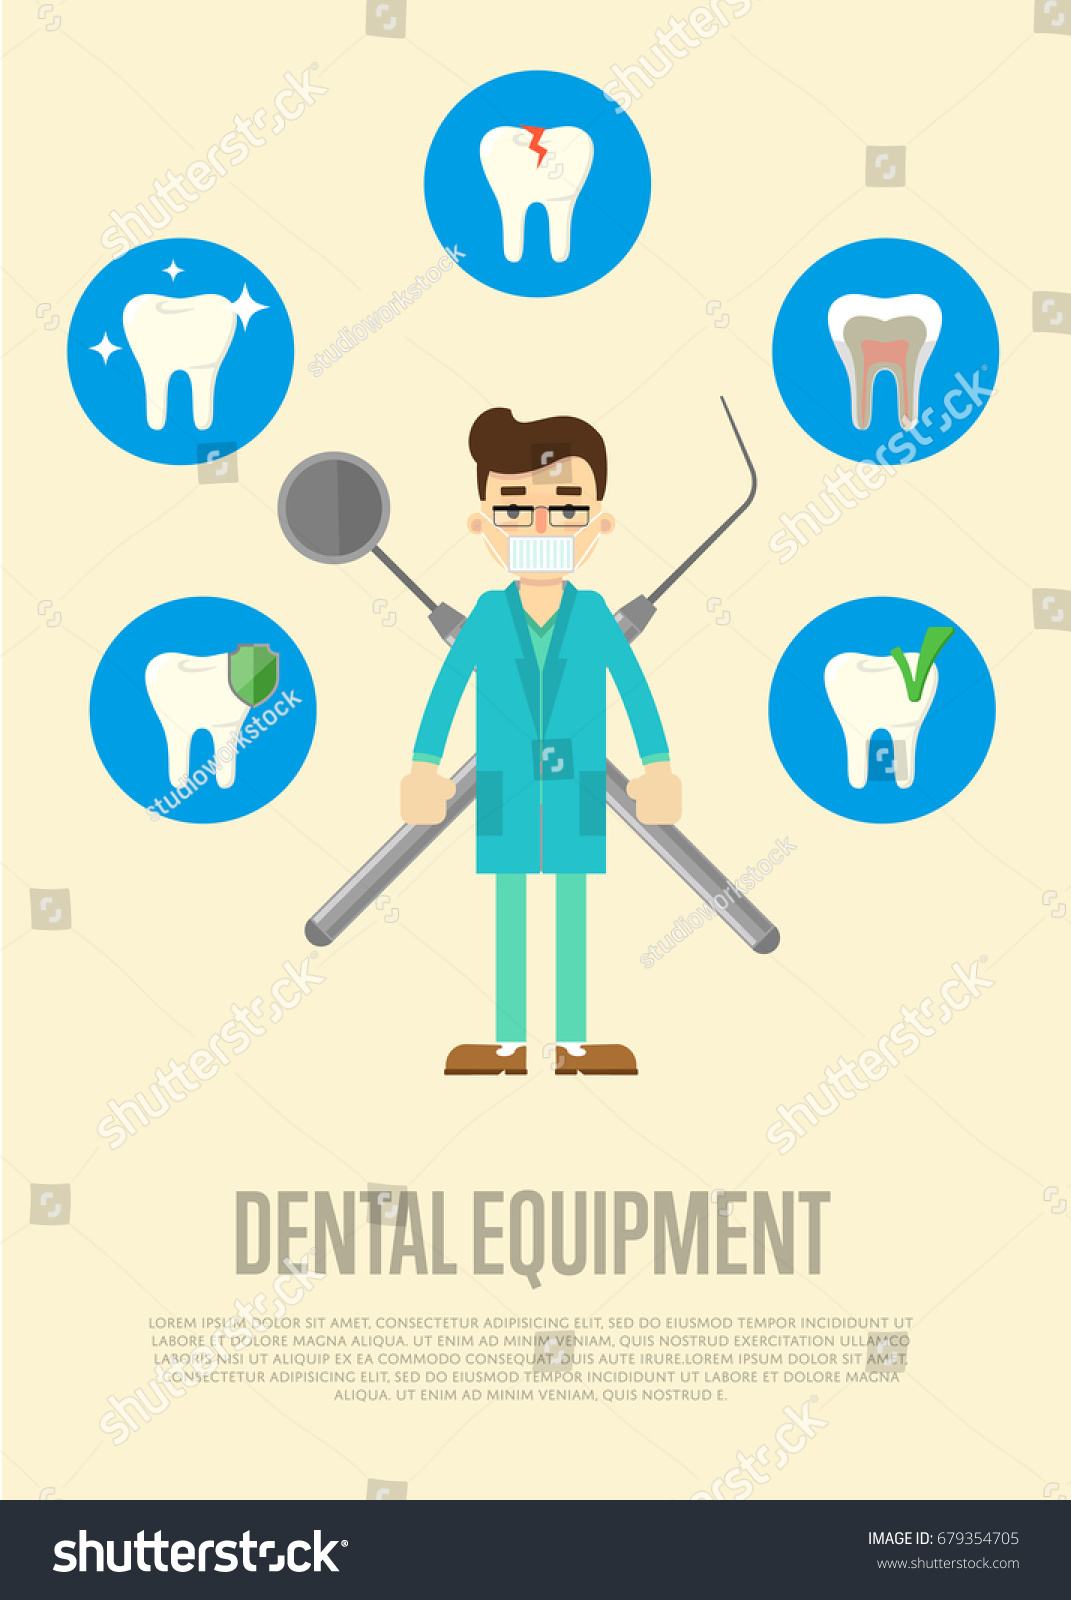 Dental Equipment Banner With Male Dentist In Medical Uniform Standing On White Background Instruments Crosswise